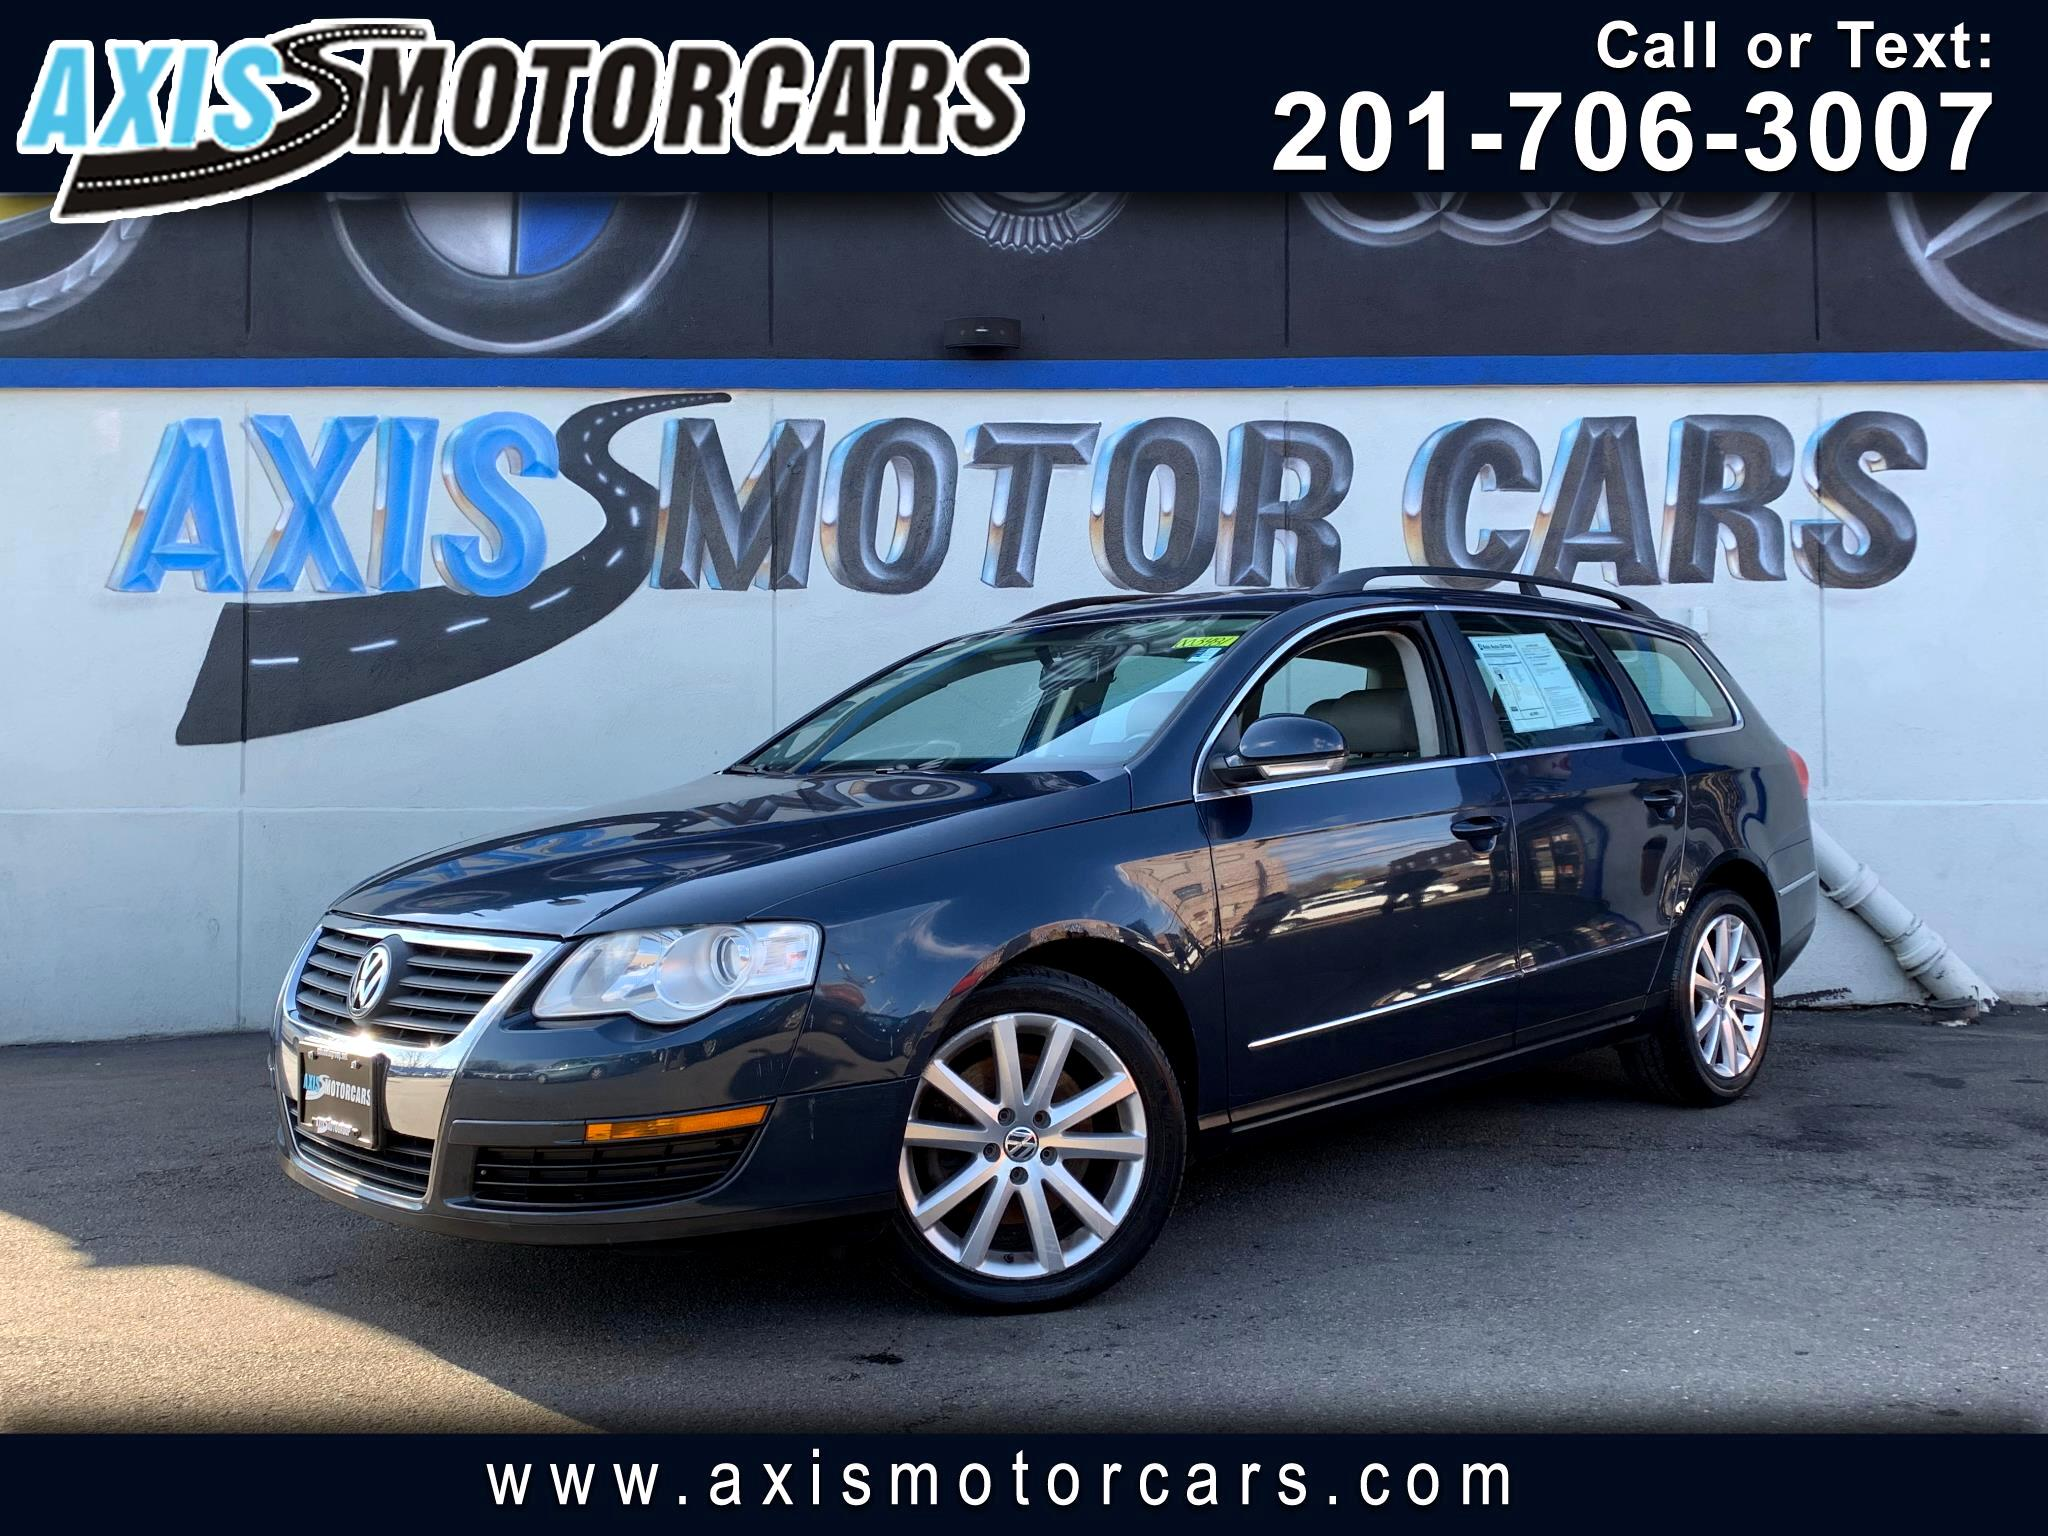 2007 Volkswagen Passat Wagon Auto 2.0T FWD w/Sun Roof Leather